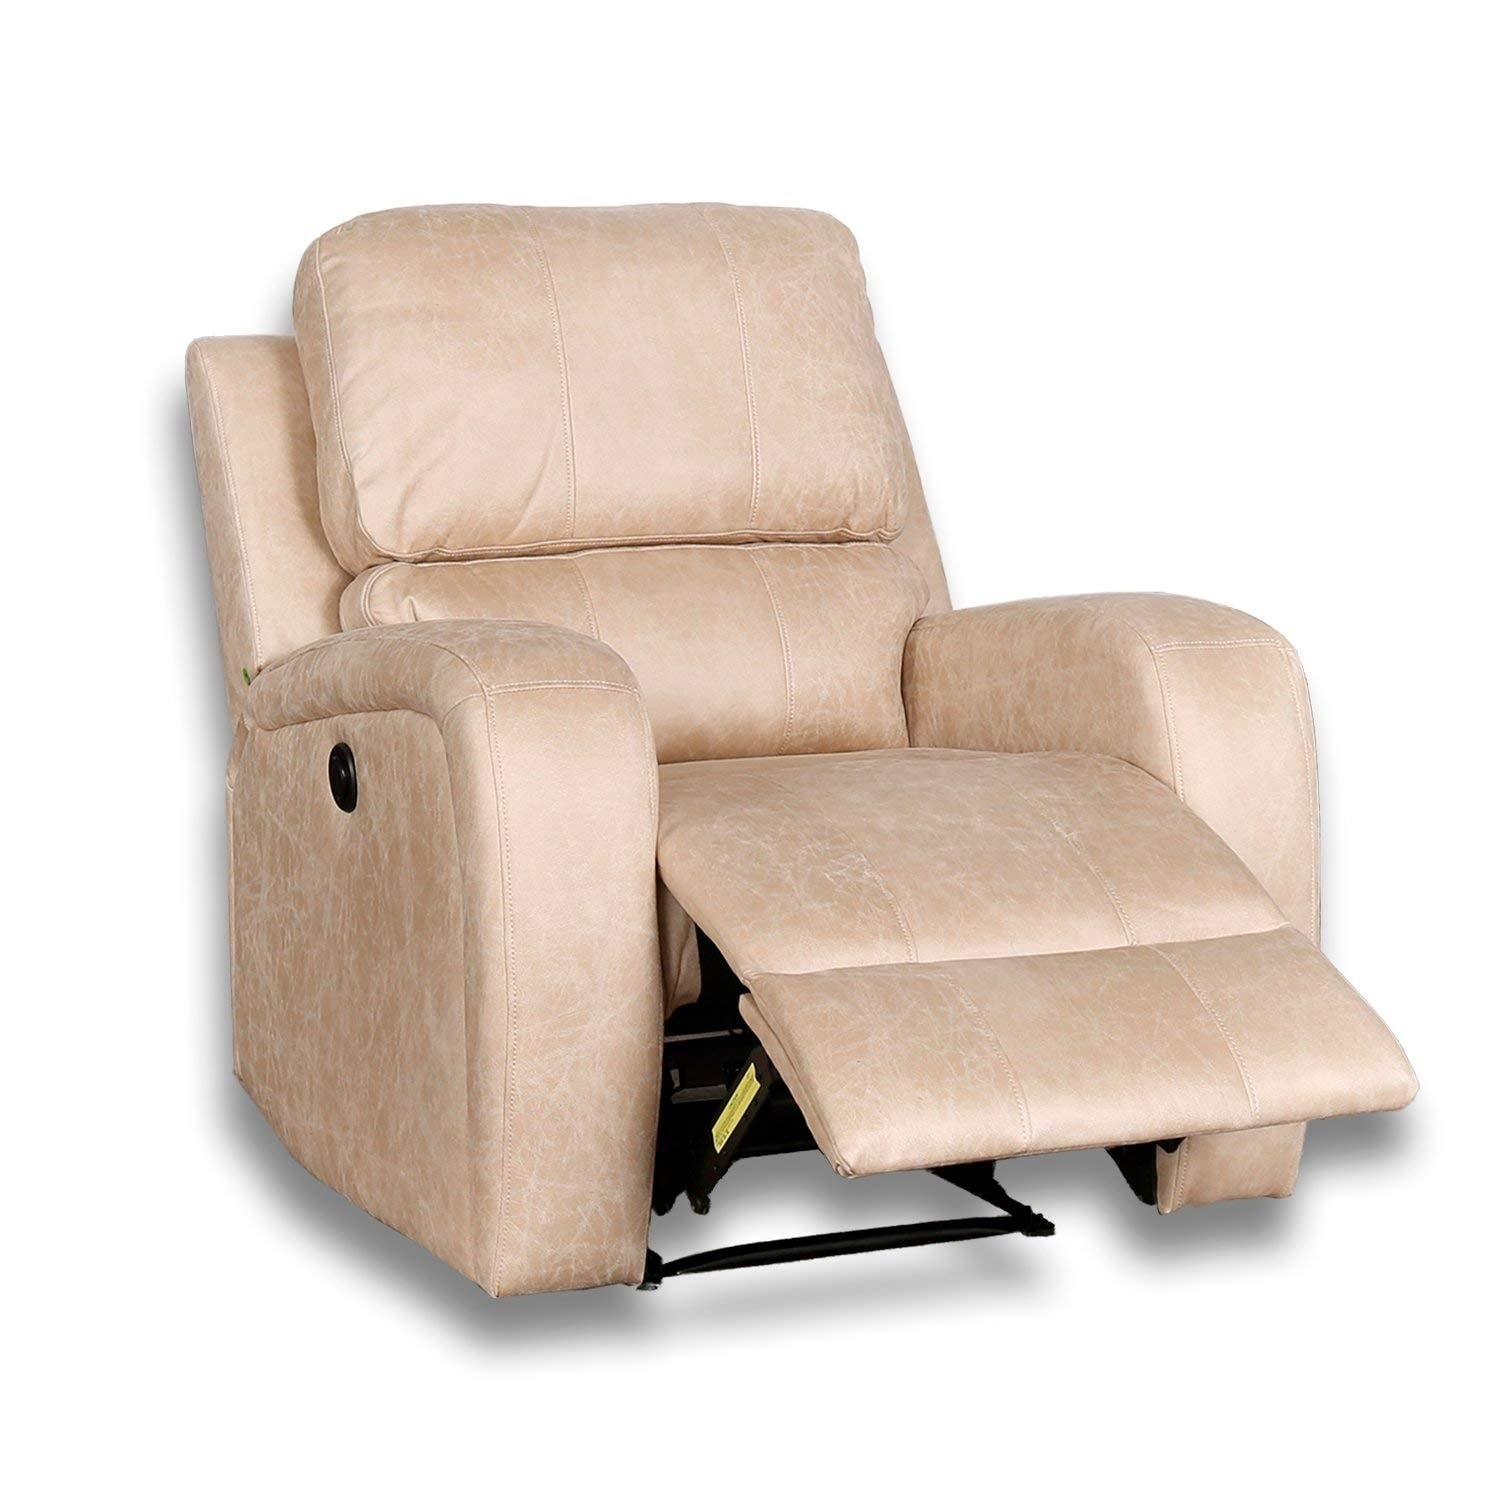 BONZY Power Recliner Chair Worned Leather Look Cover with Over Stuffed Head Cushion Electirc Recliner Chair - Buff